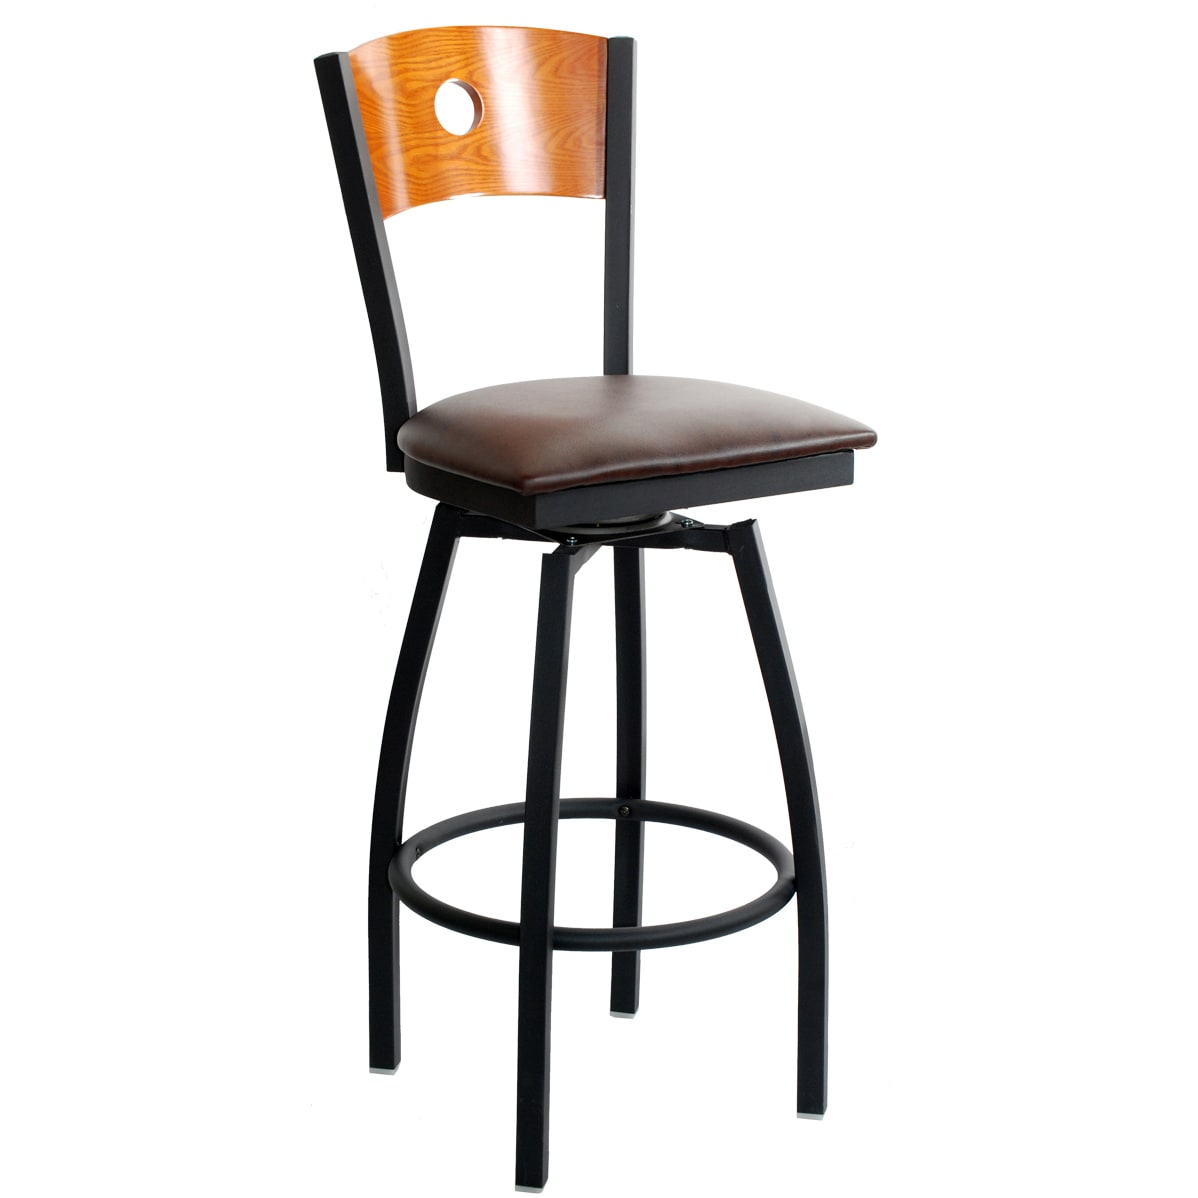 Cool Interchangeable Back Metal Swivel Bar Stool With A Circled Back Squirreltailoven Fun Painted Chair Ideas Images Squirreltailovenorg